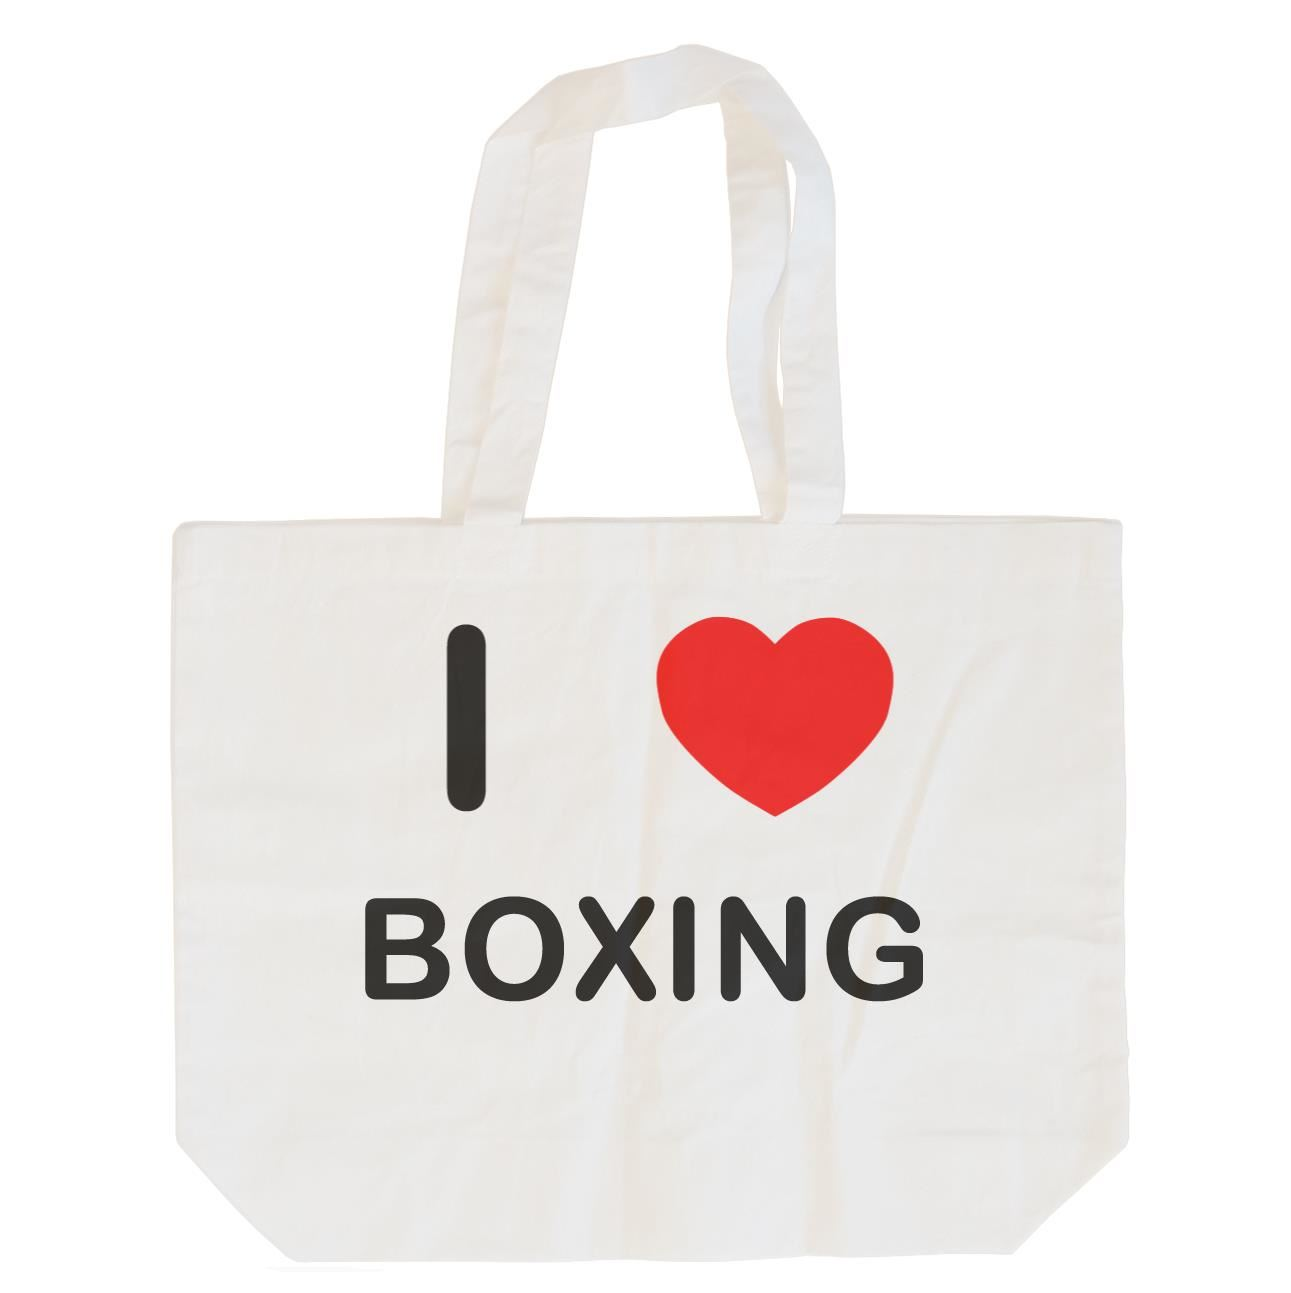 I Love Boxing - Cotton Bag | Size choice Tote, Shopper or Sling